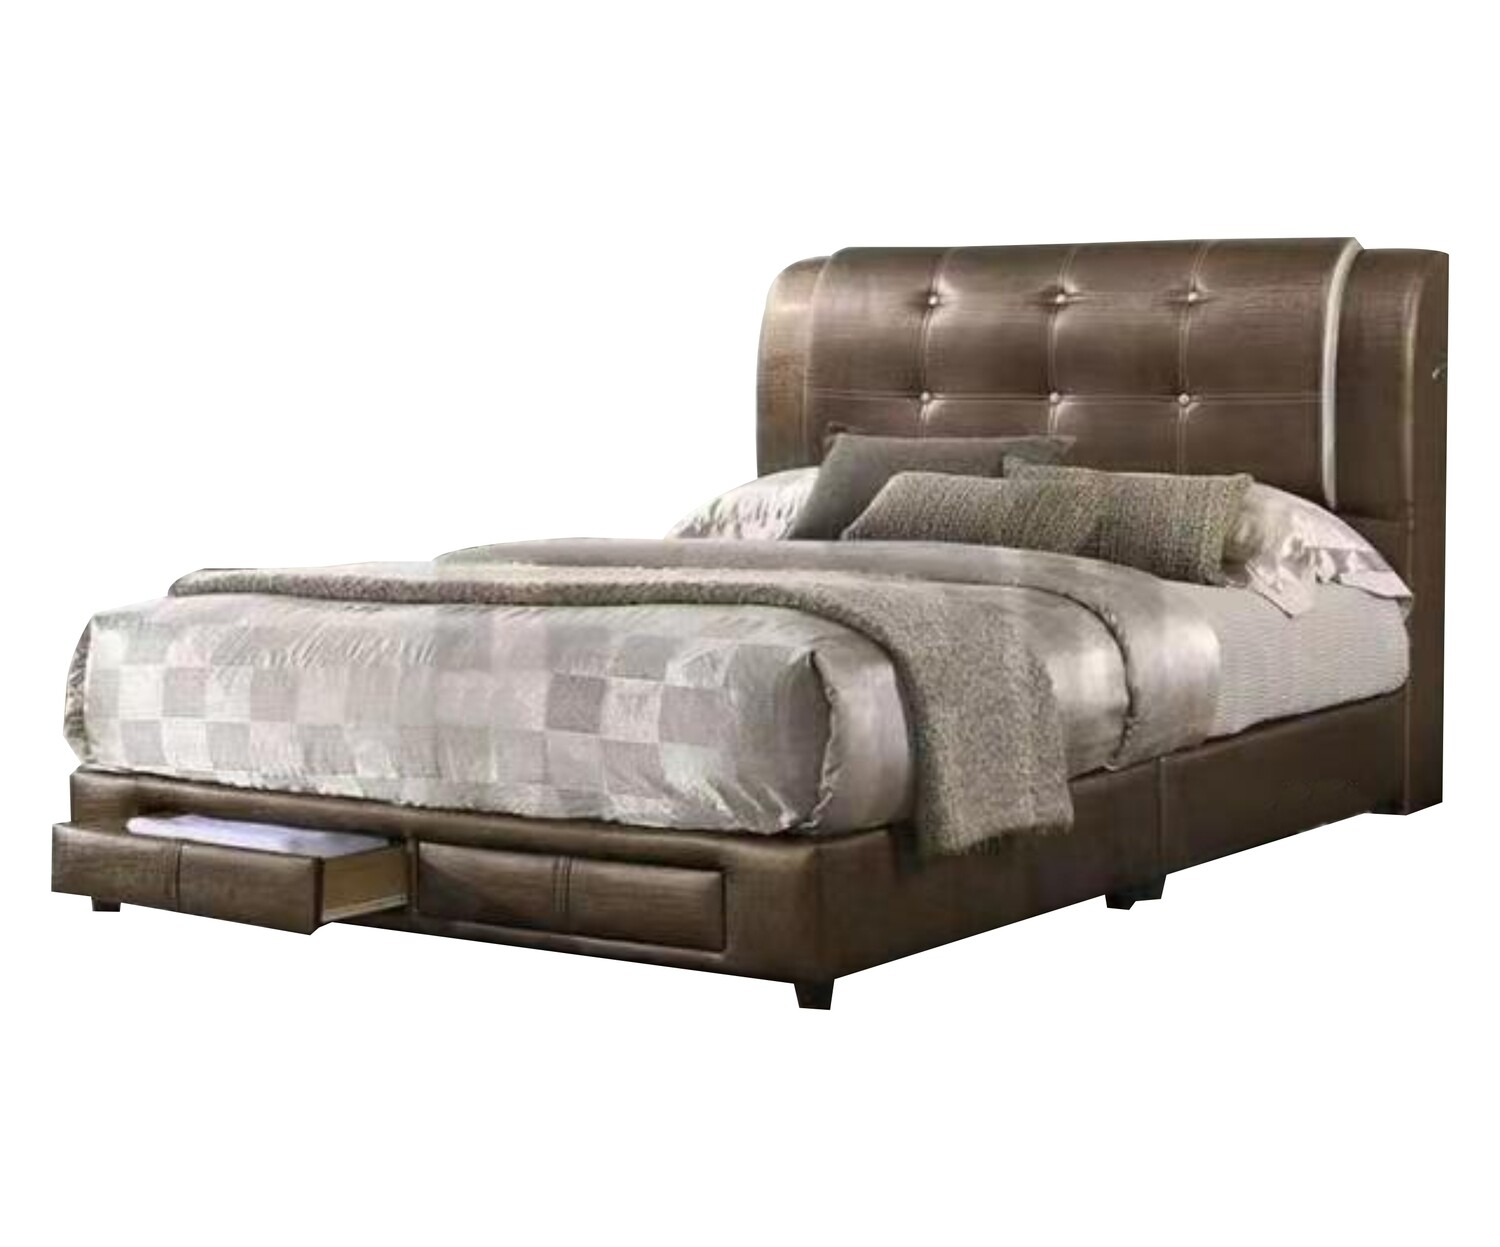 Divan Bed with 2 Drawers - Queen Size